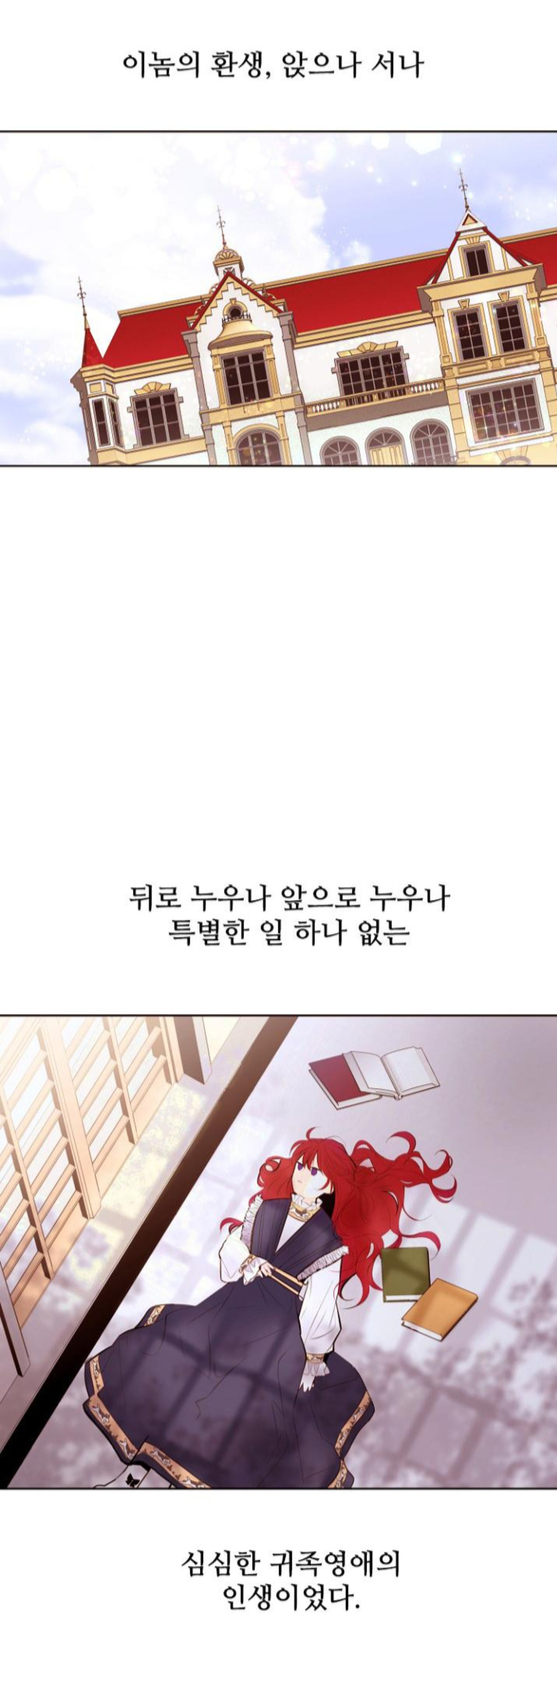 Scenes from Daum Webtoon's ″A common story of a lady's new life.″ [SCREEN CAPTURE]